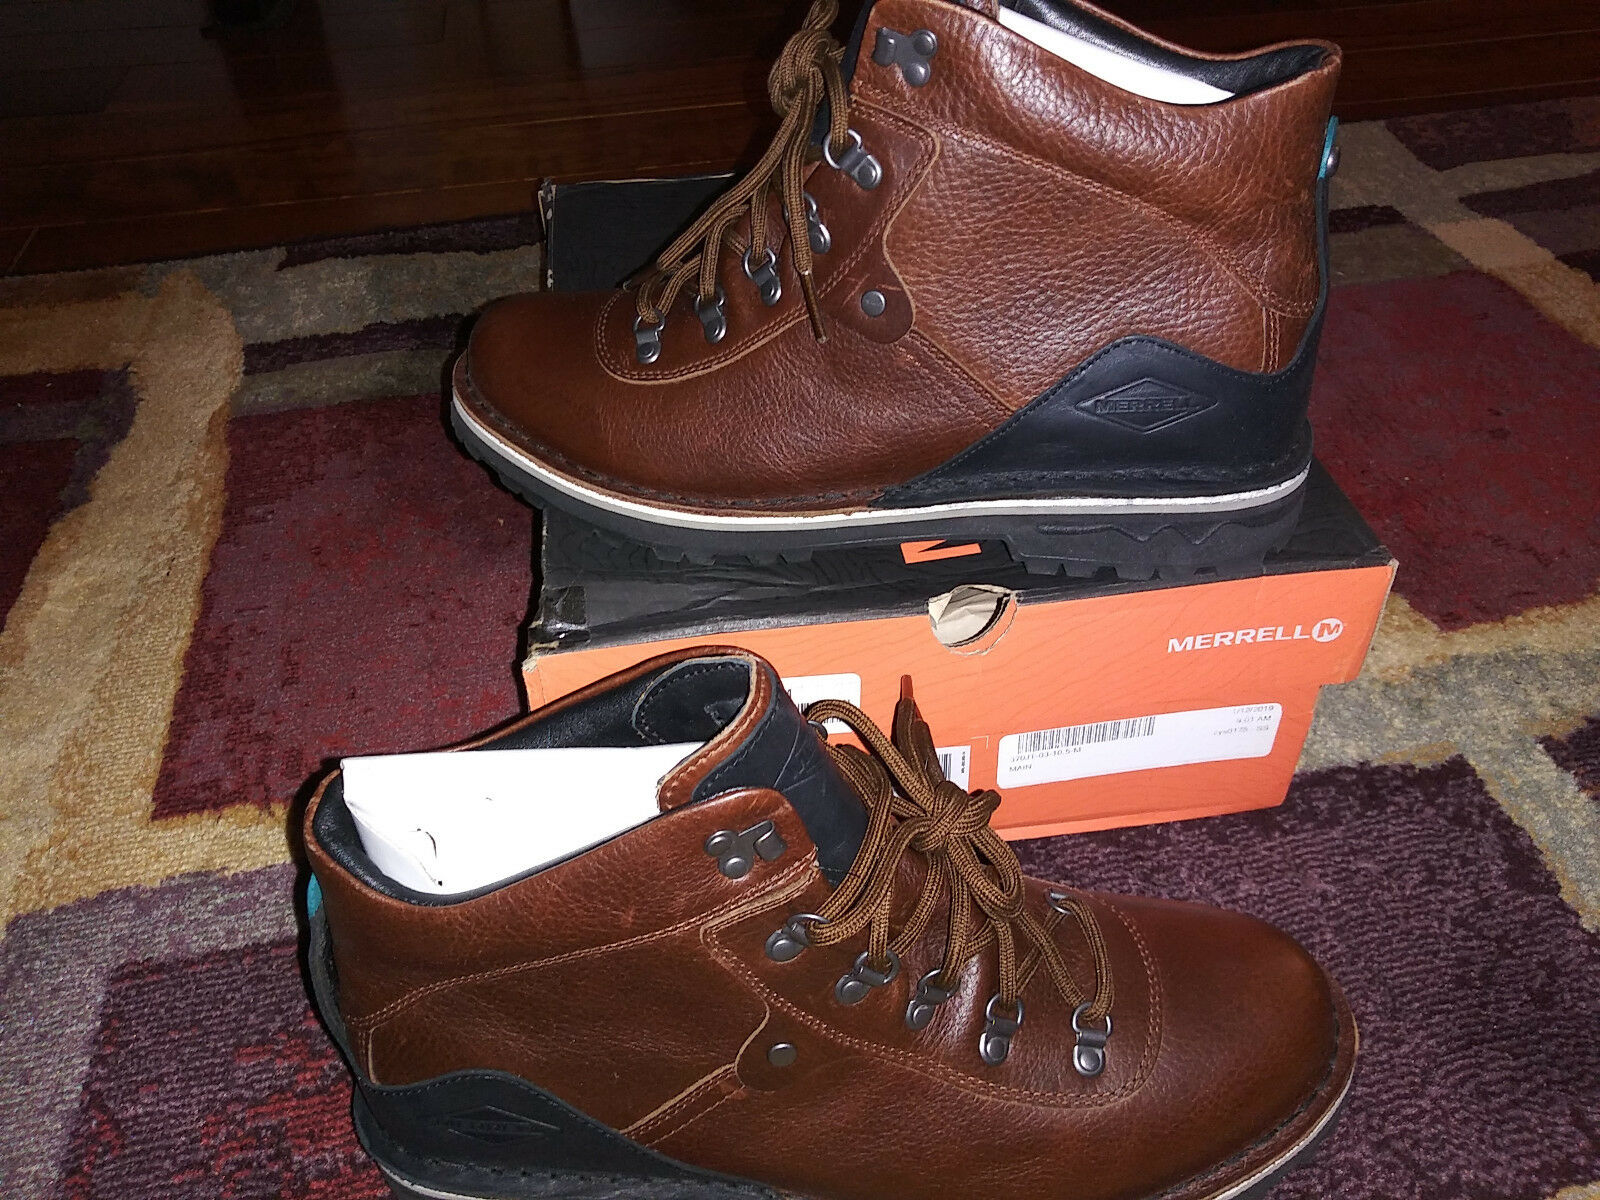 NEW  229 Womens Merrell Sugarbush Valley Boots, size 9    shoes